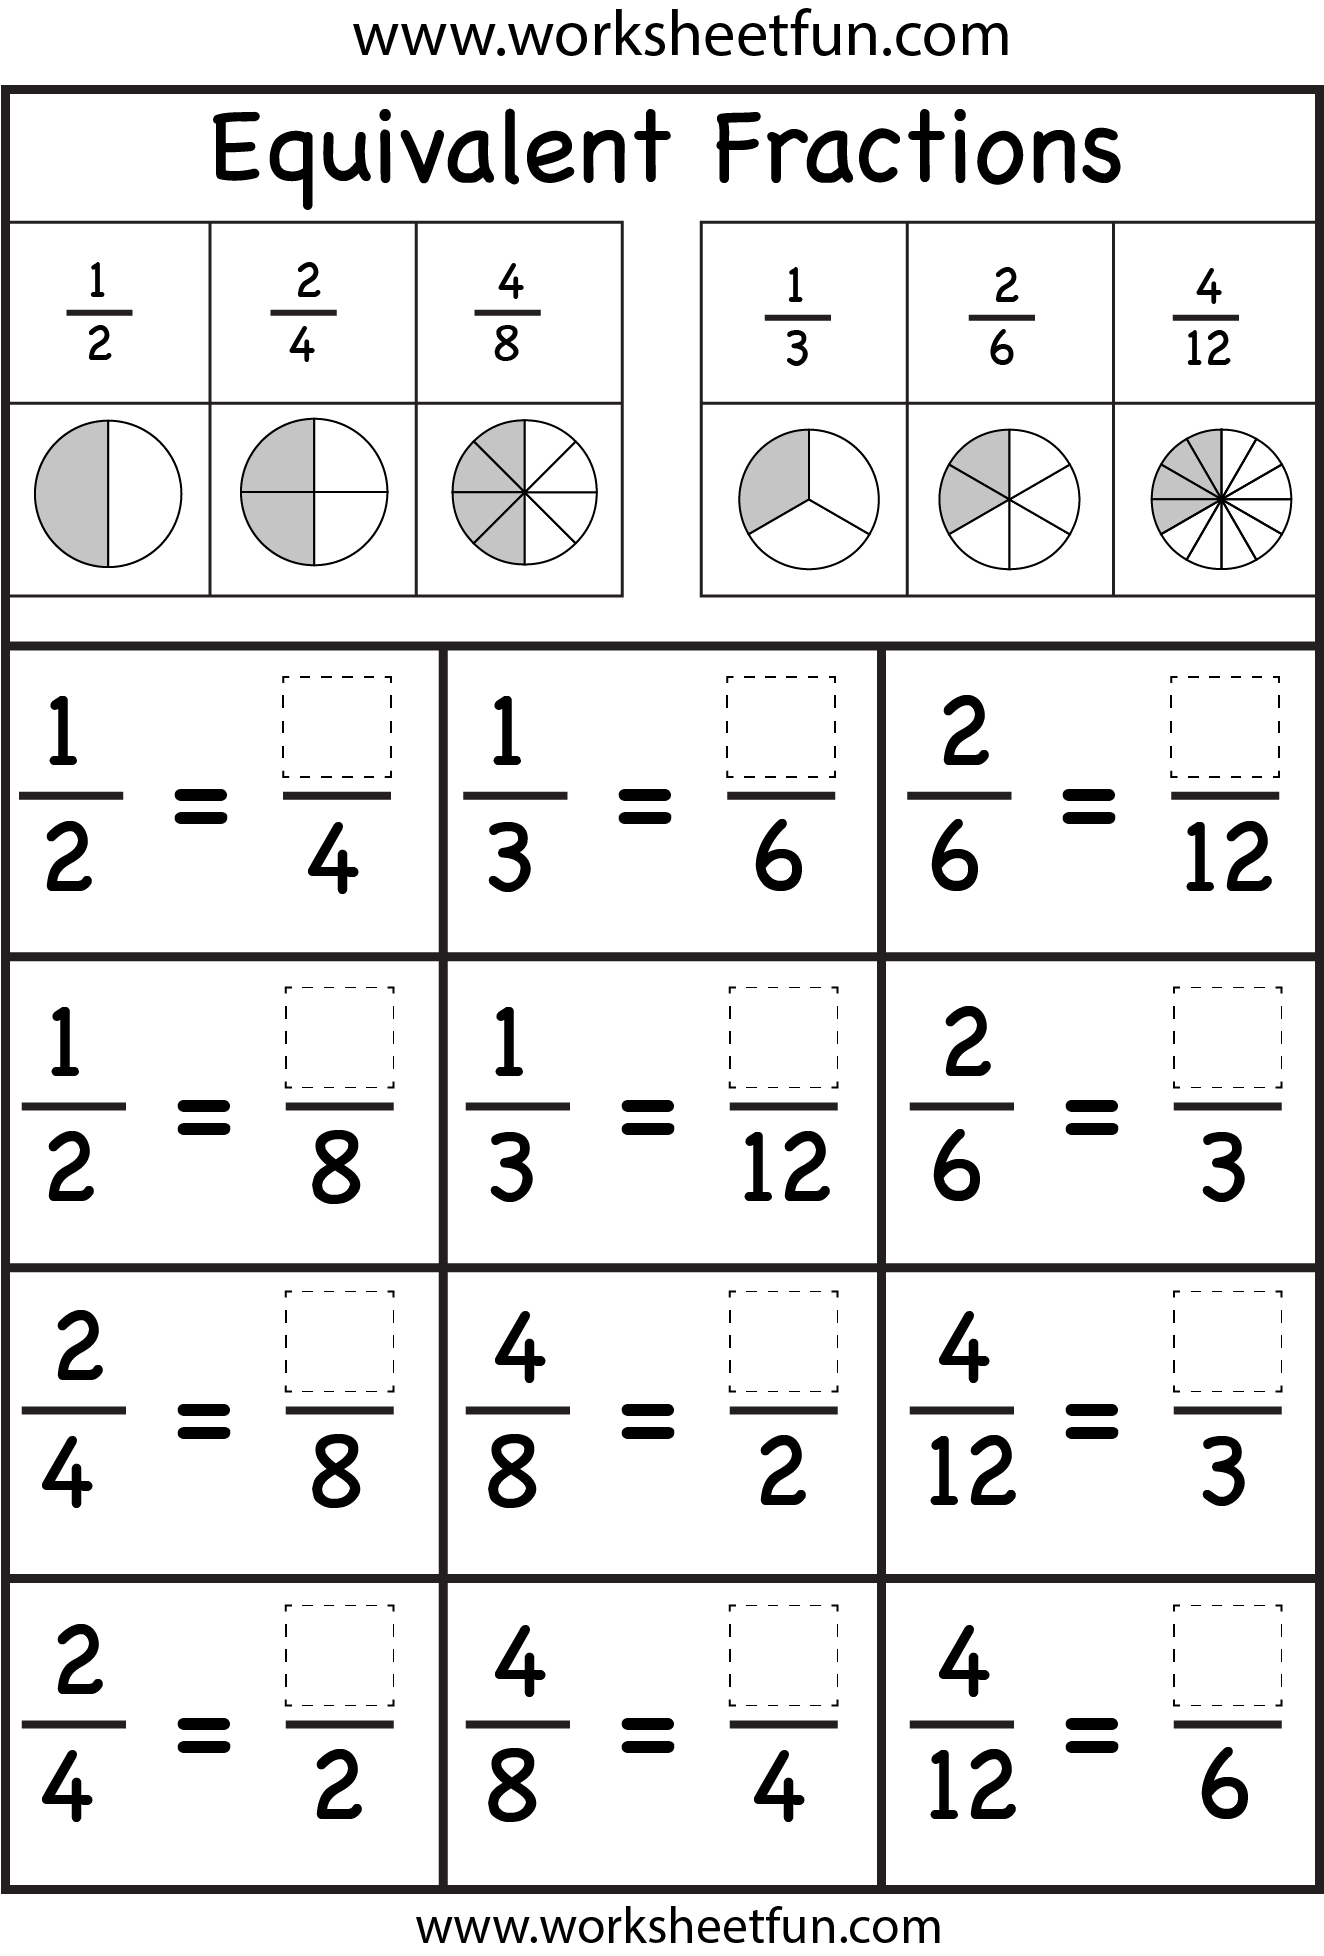 hight resolution of Pin by Joicy Amaral Souza on Education - Math   Math fractions worksheets